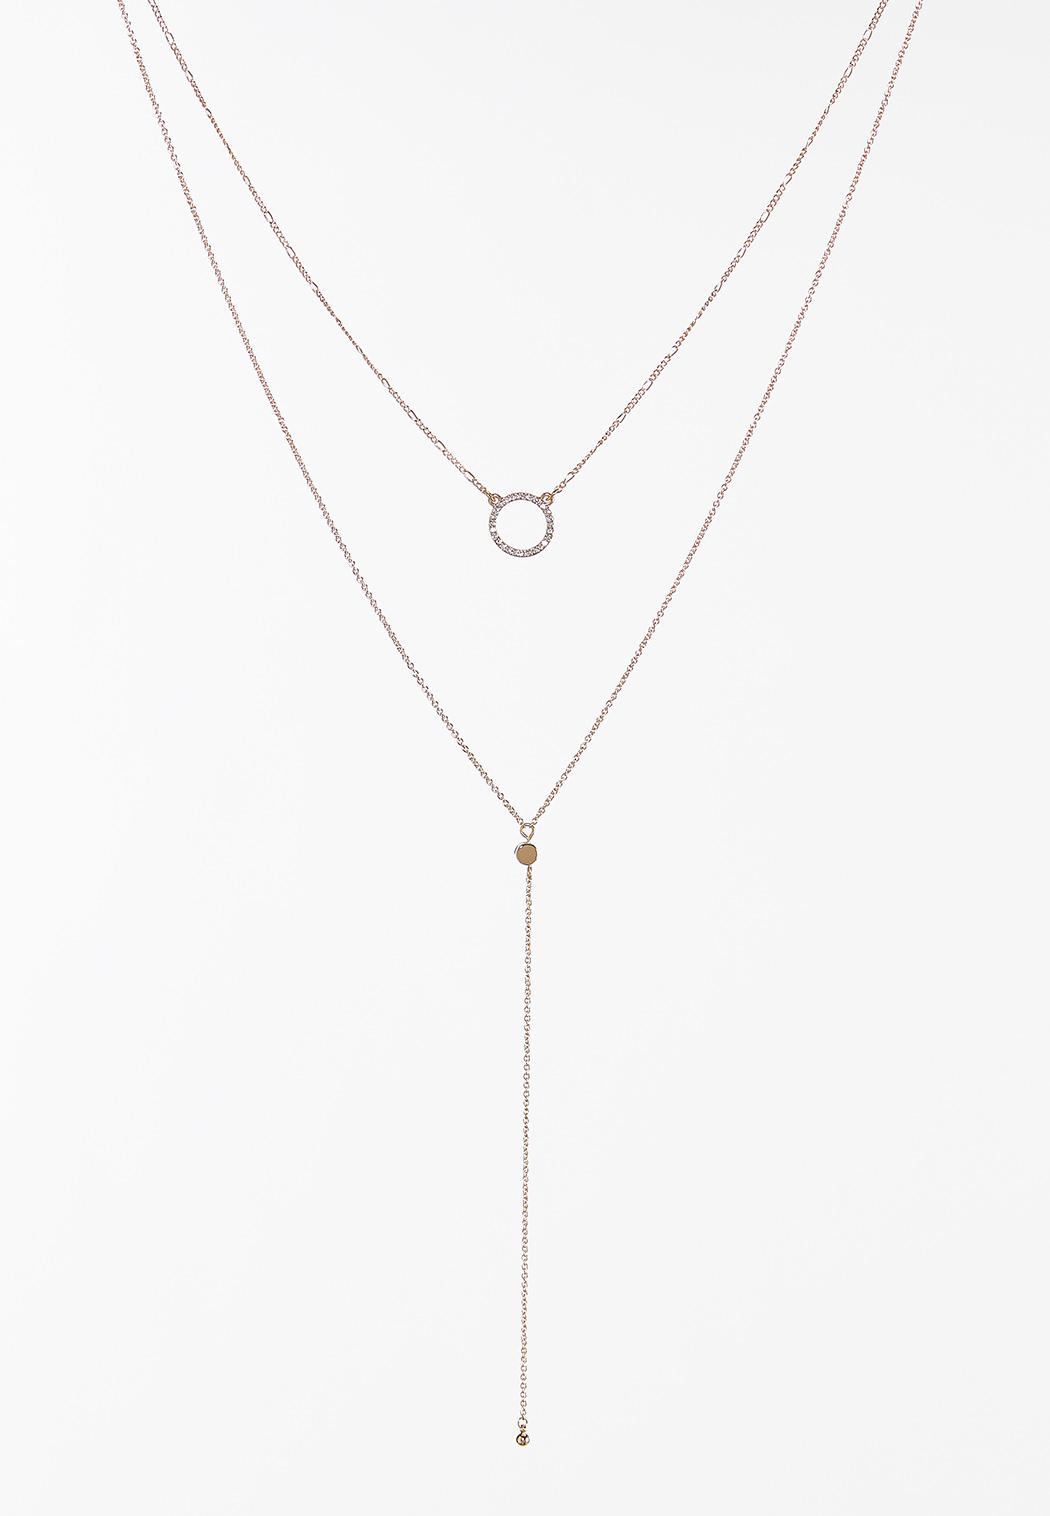 Delicate Layered Y-Necklace